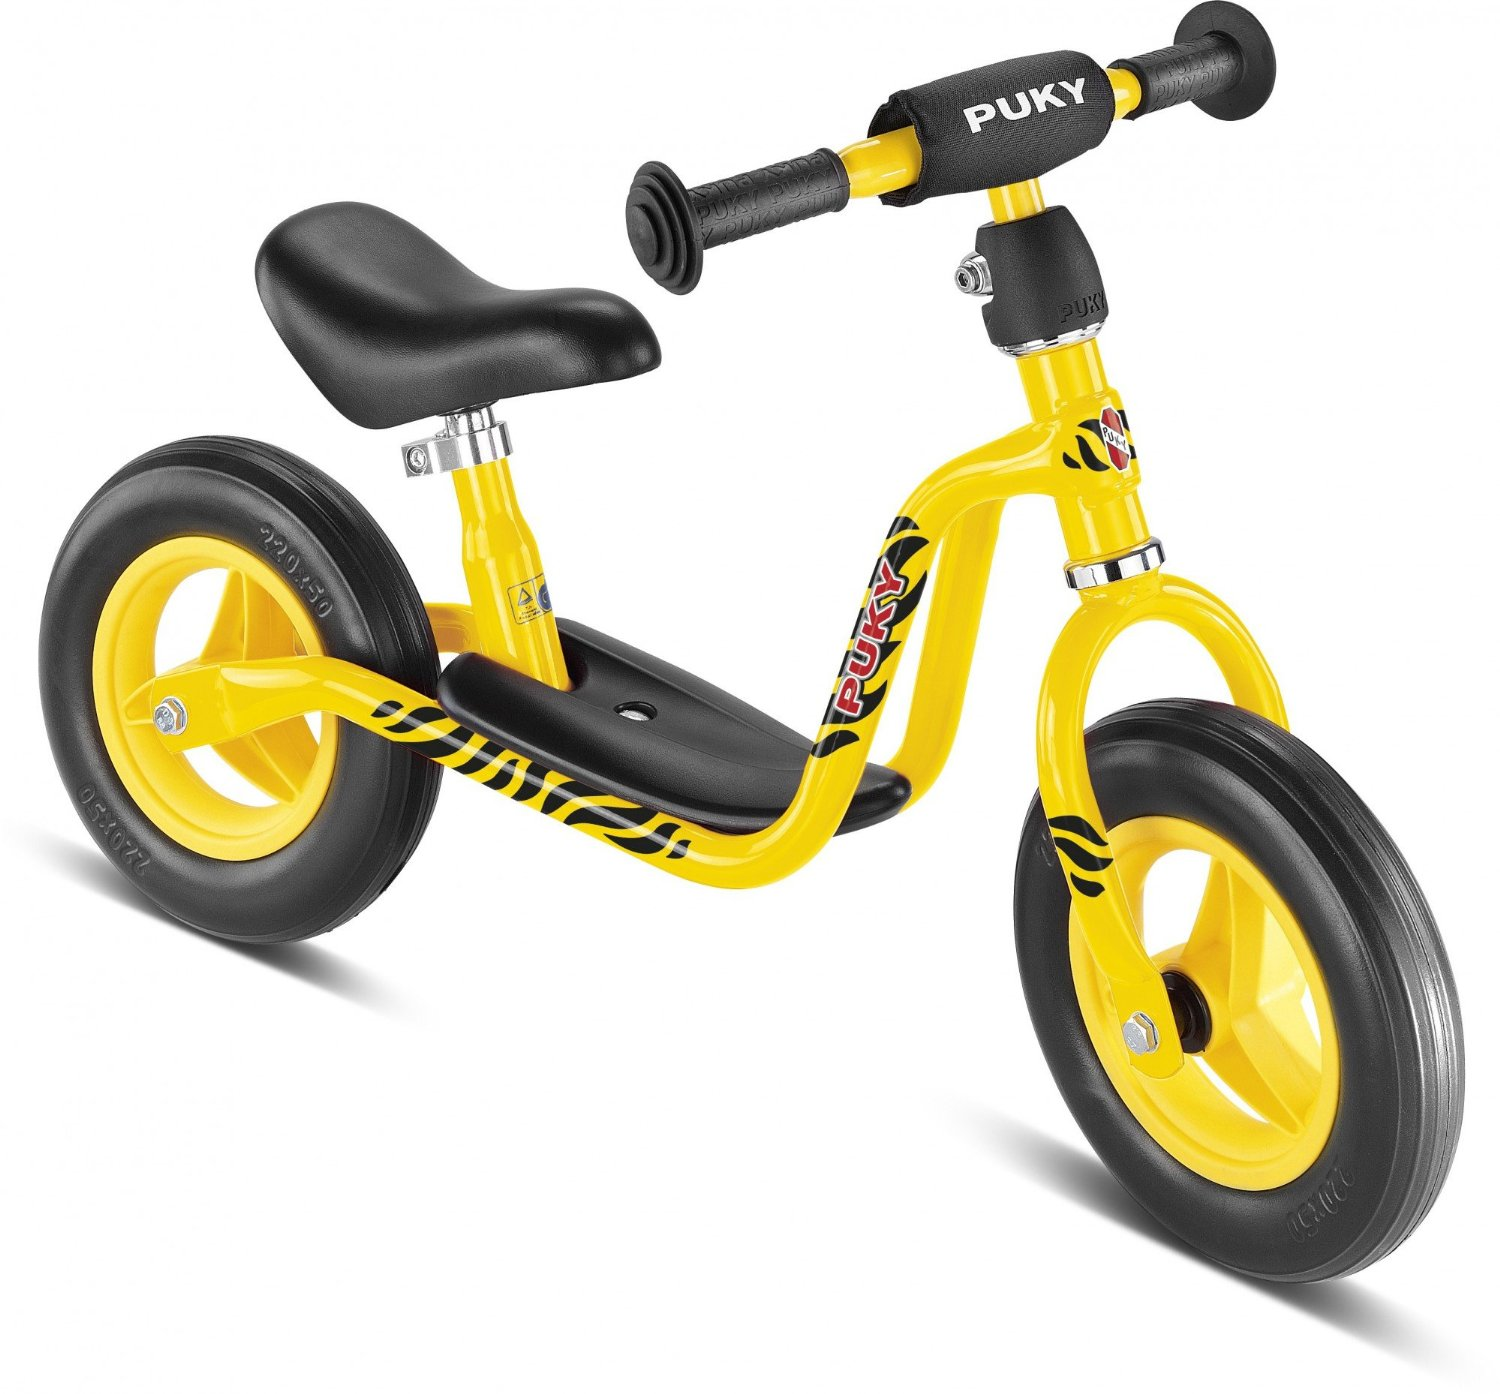 Puky LR M kids push bikes Children yellow 2016 balance bike